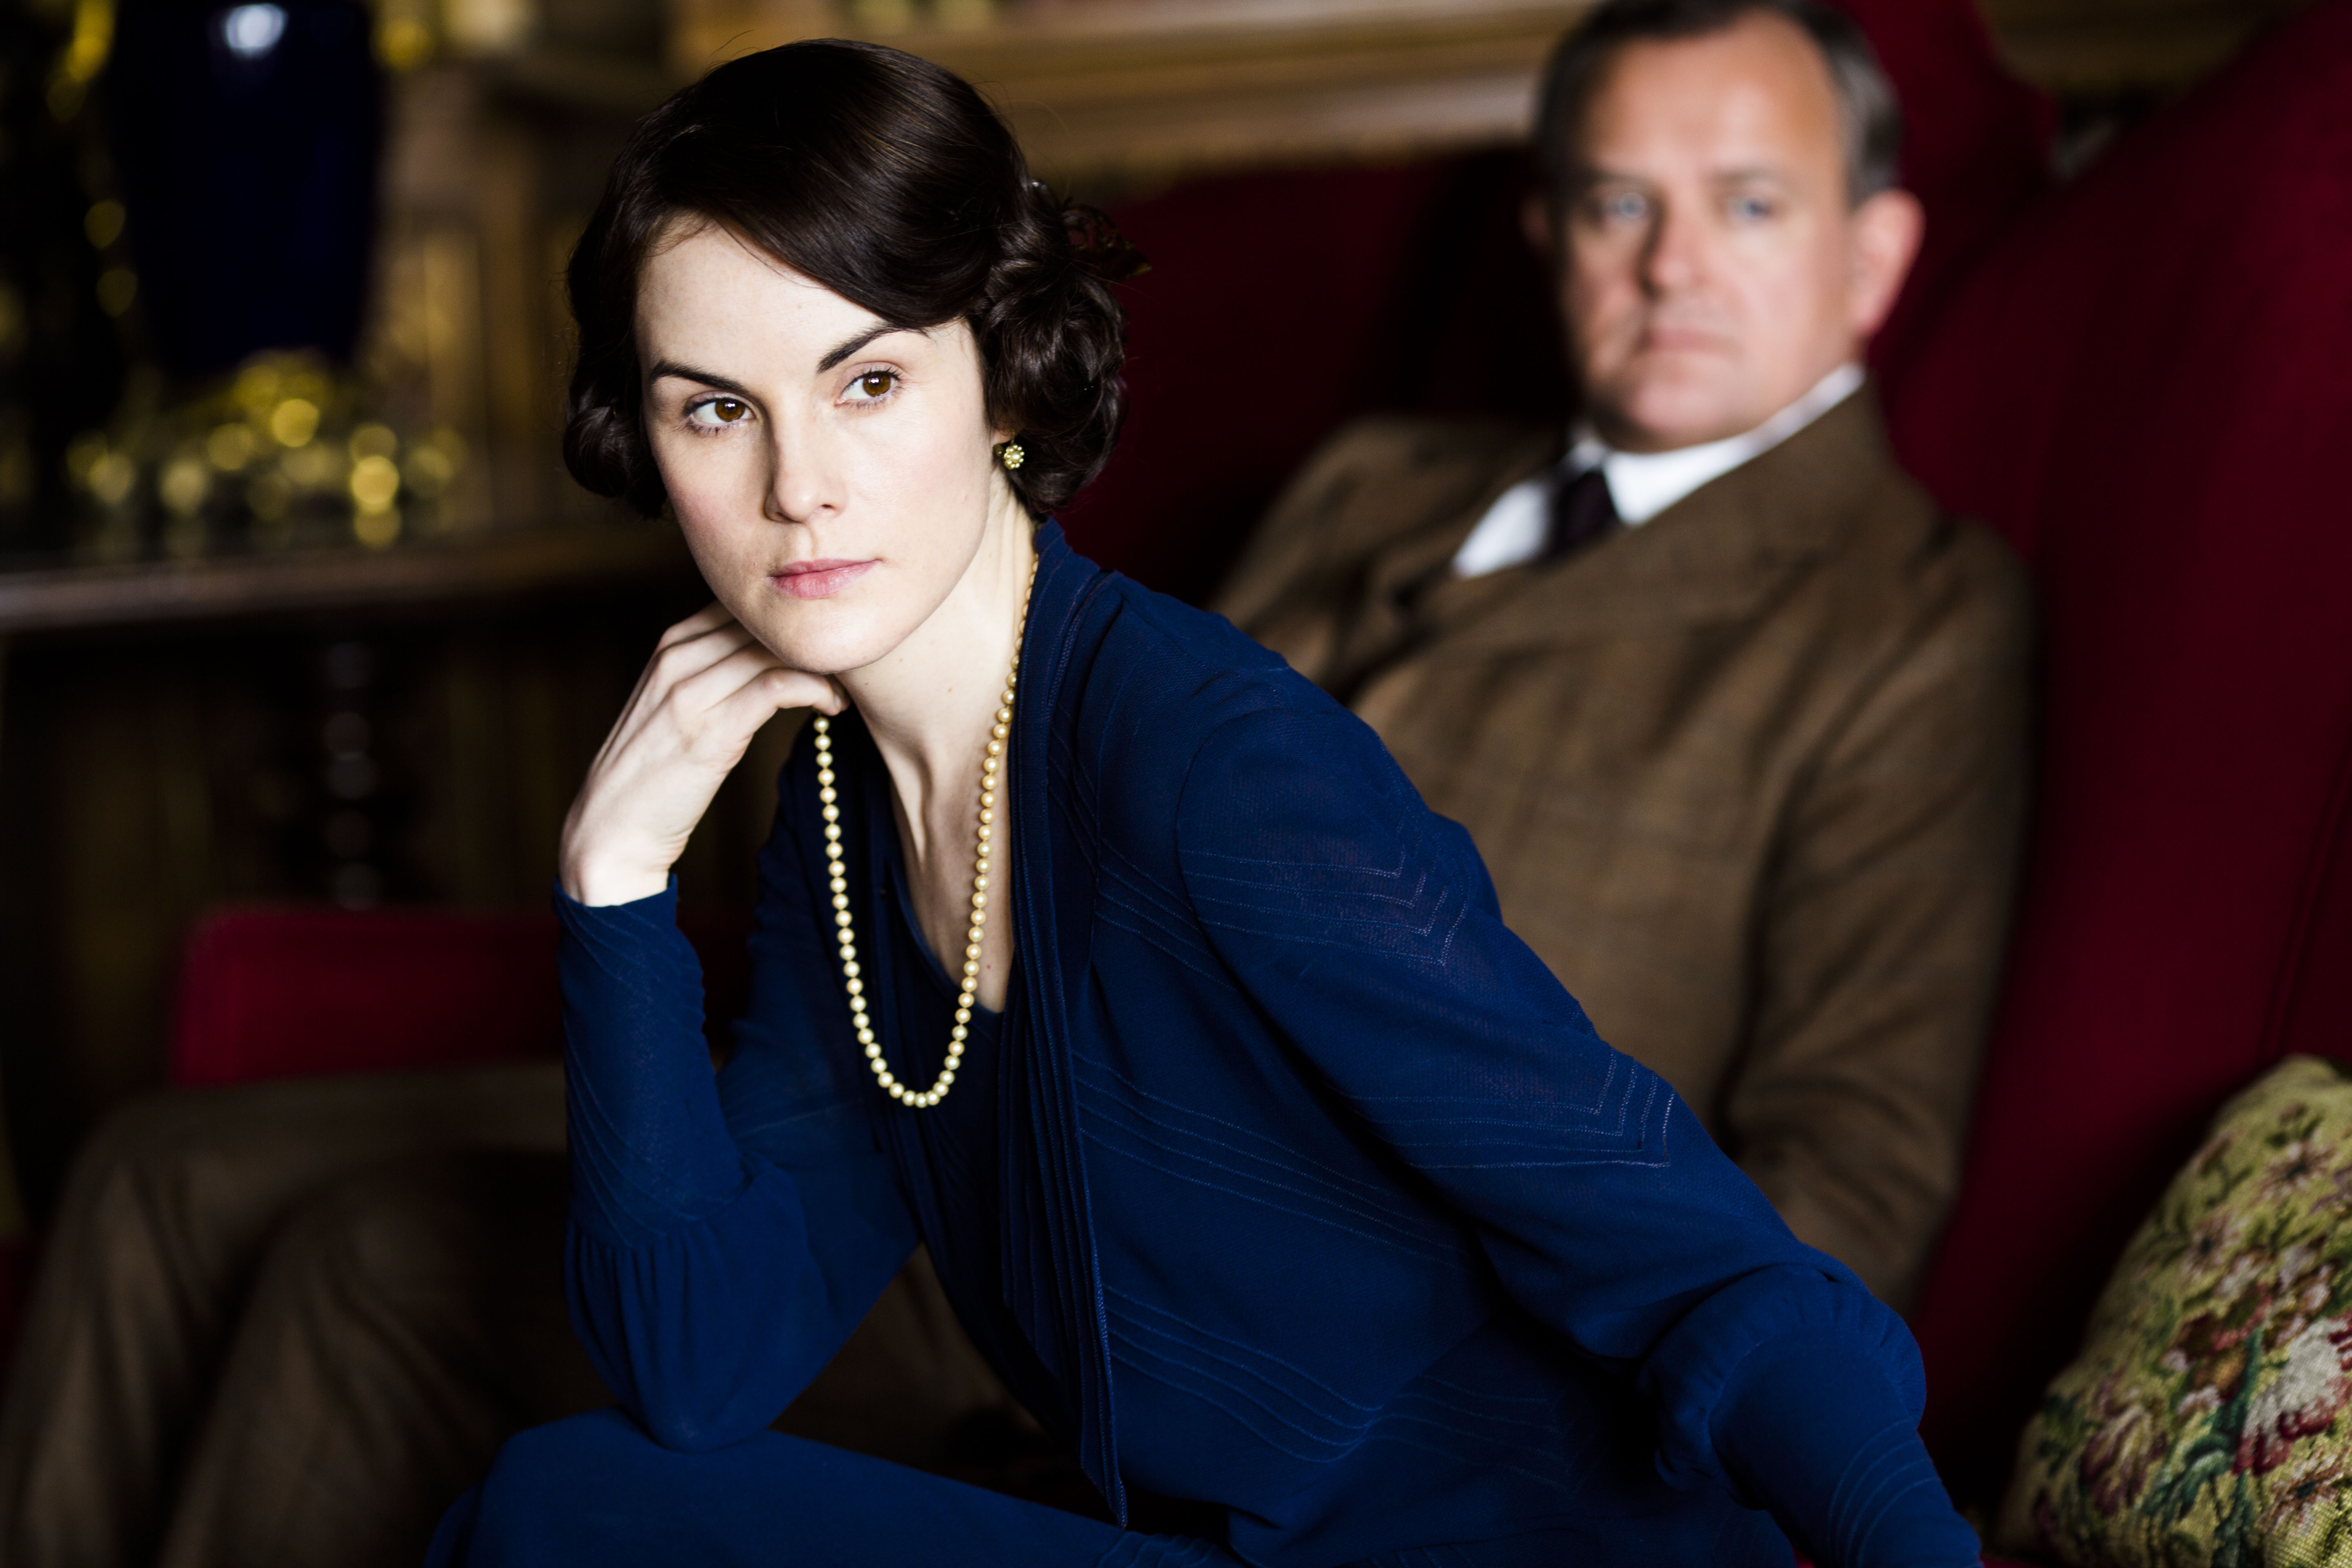 pictures Weekend Agenda: Downton Abbey Returns and Steve McQueen's Motorcycle ForSale